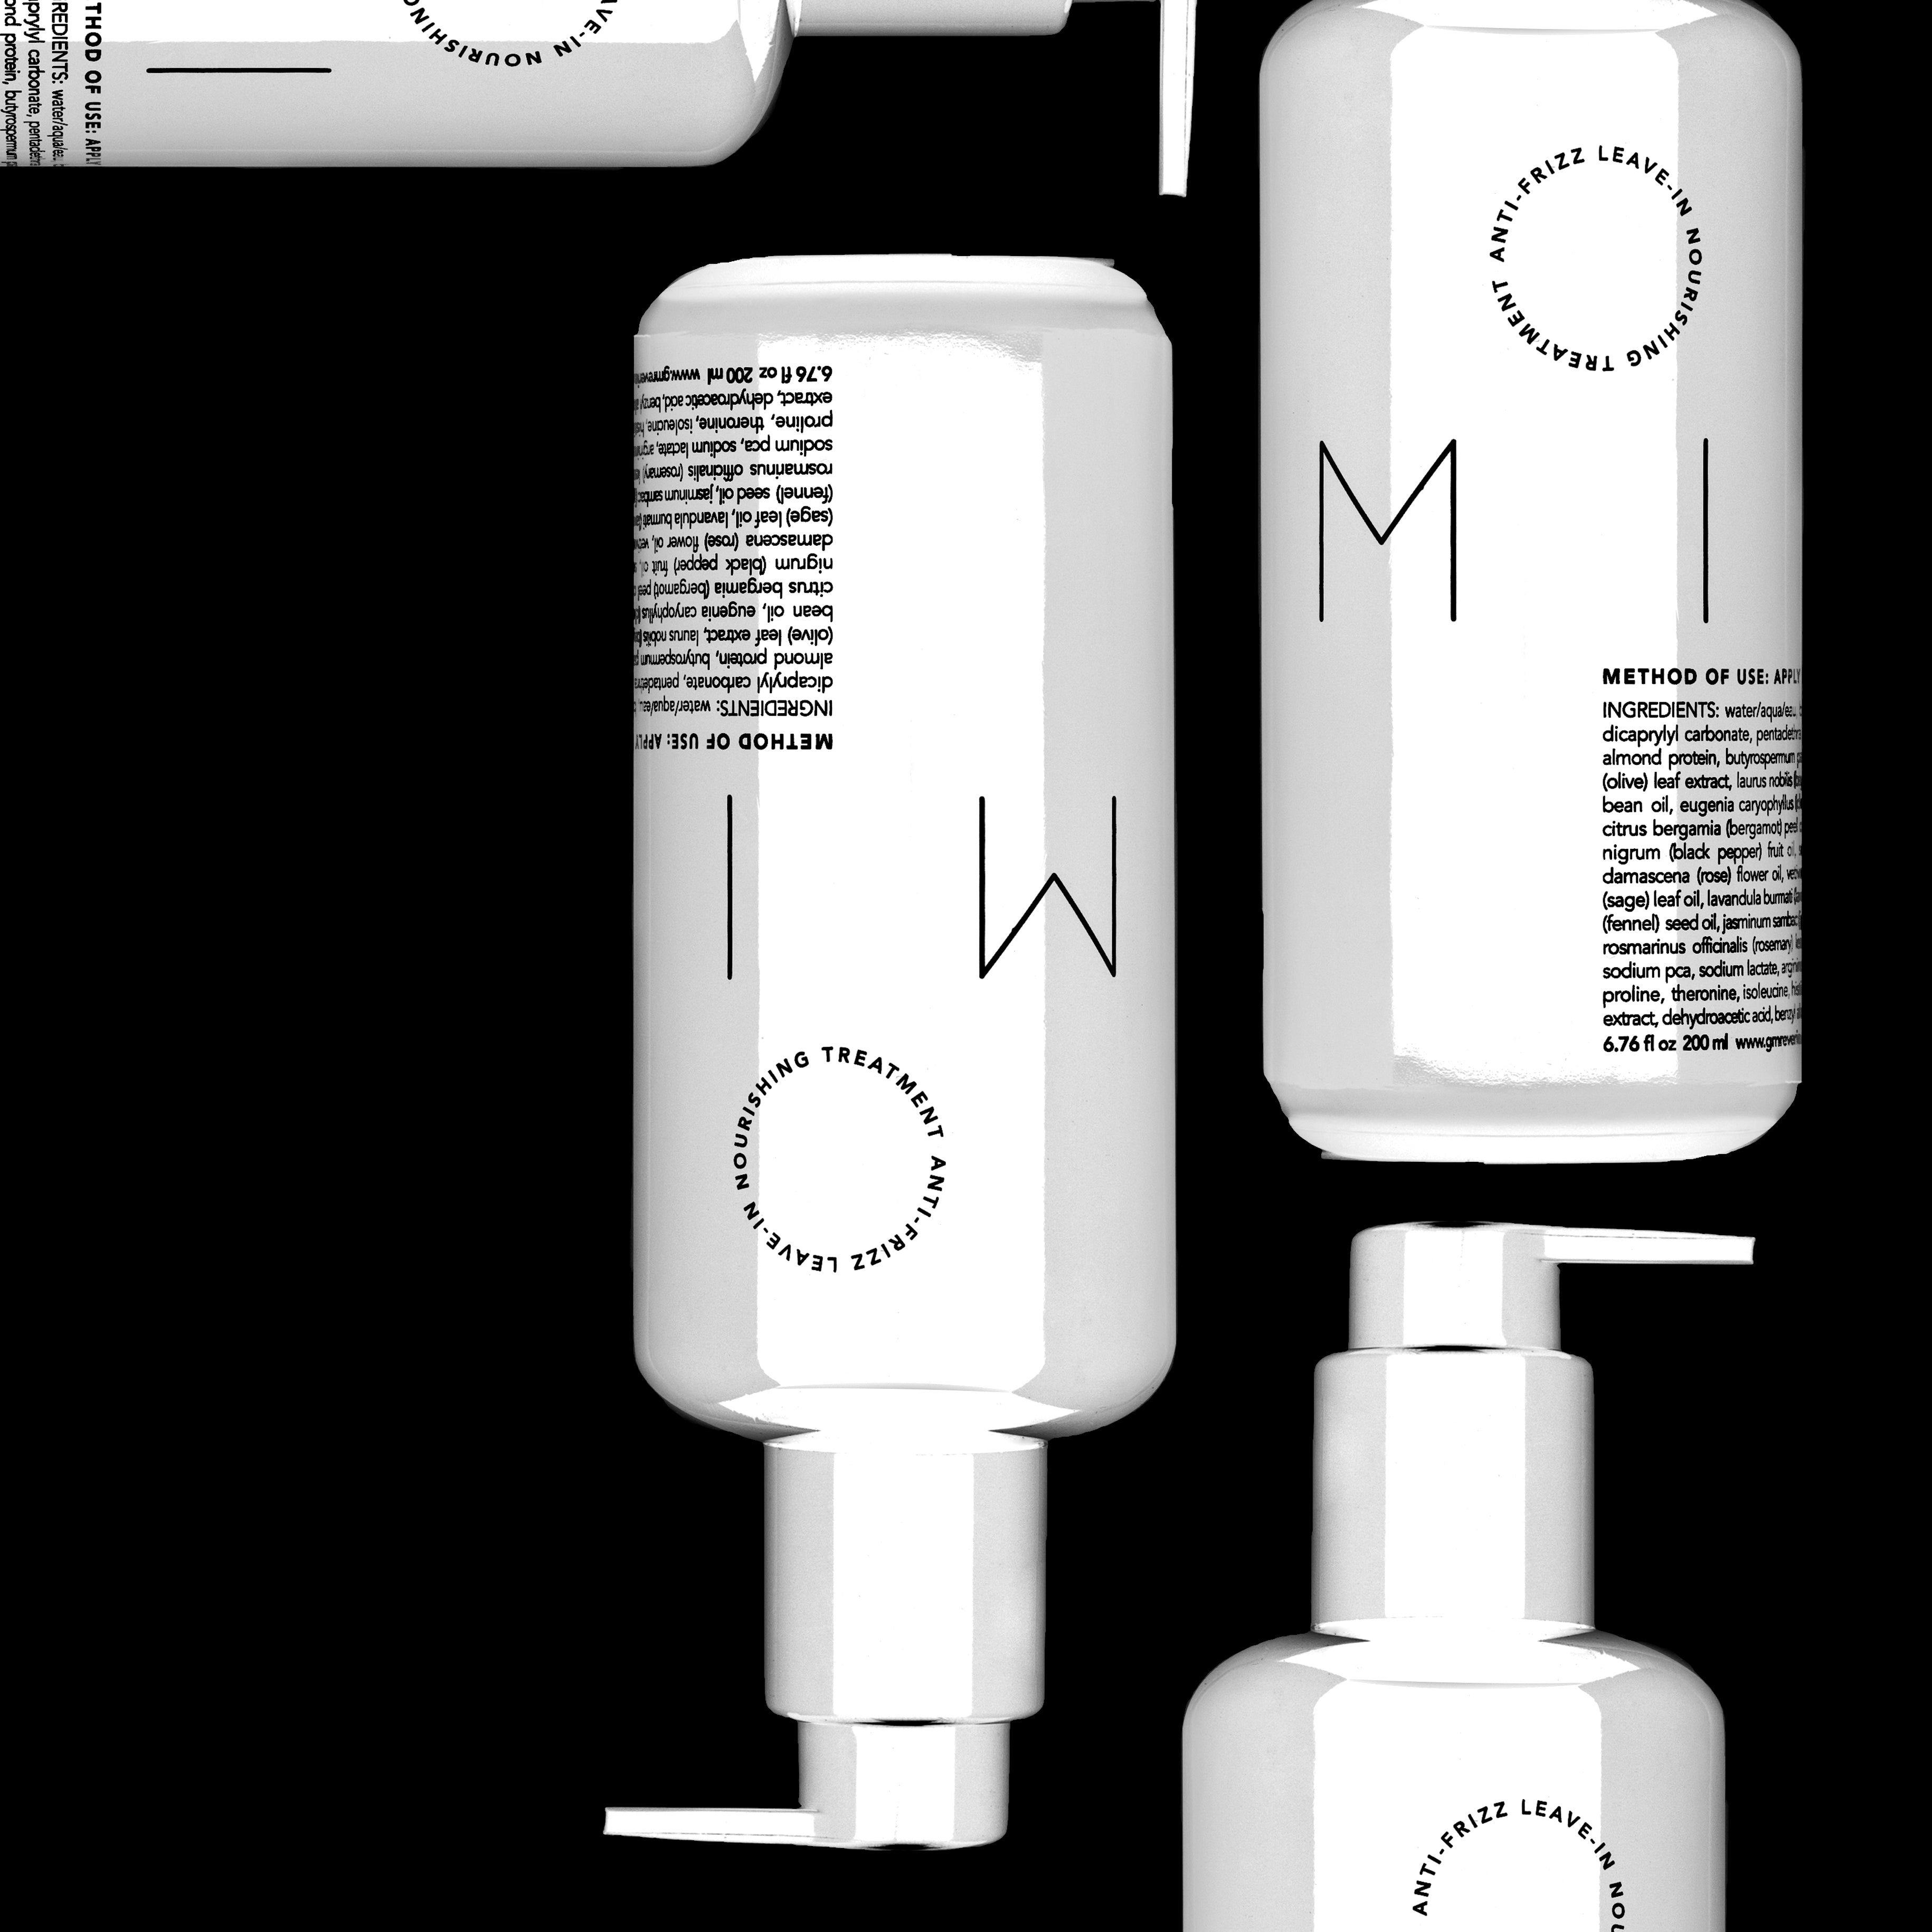 Milk XL is seen in a minimal style with inverted colors- the bottle is white with black text against a black background.